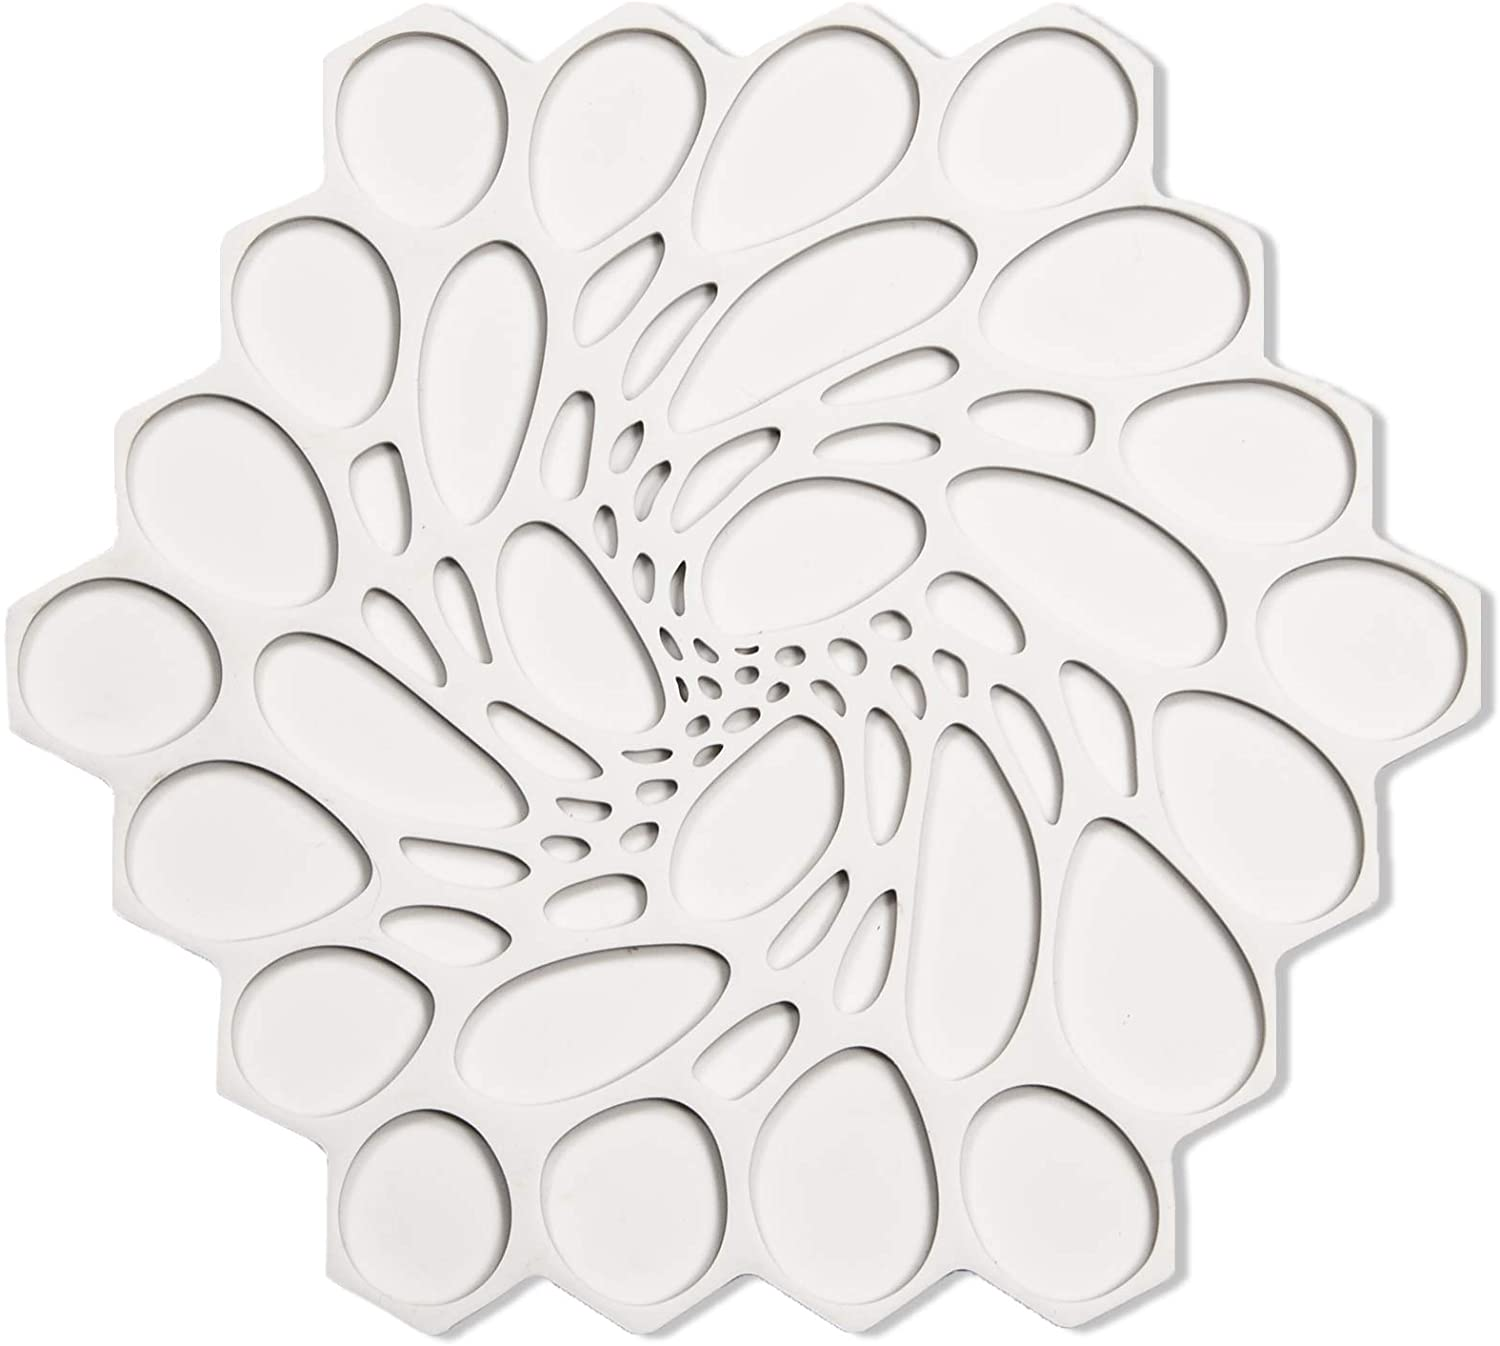 a creamy white modern twist silicone trivet on a white background